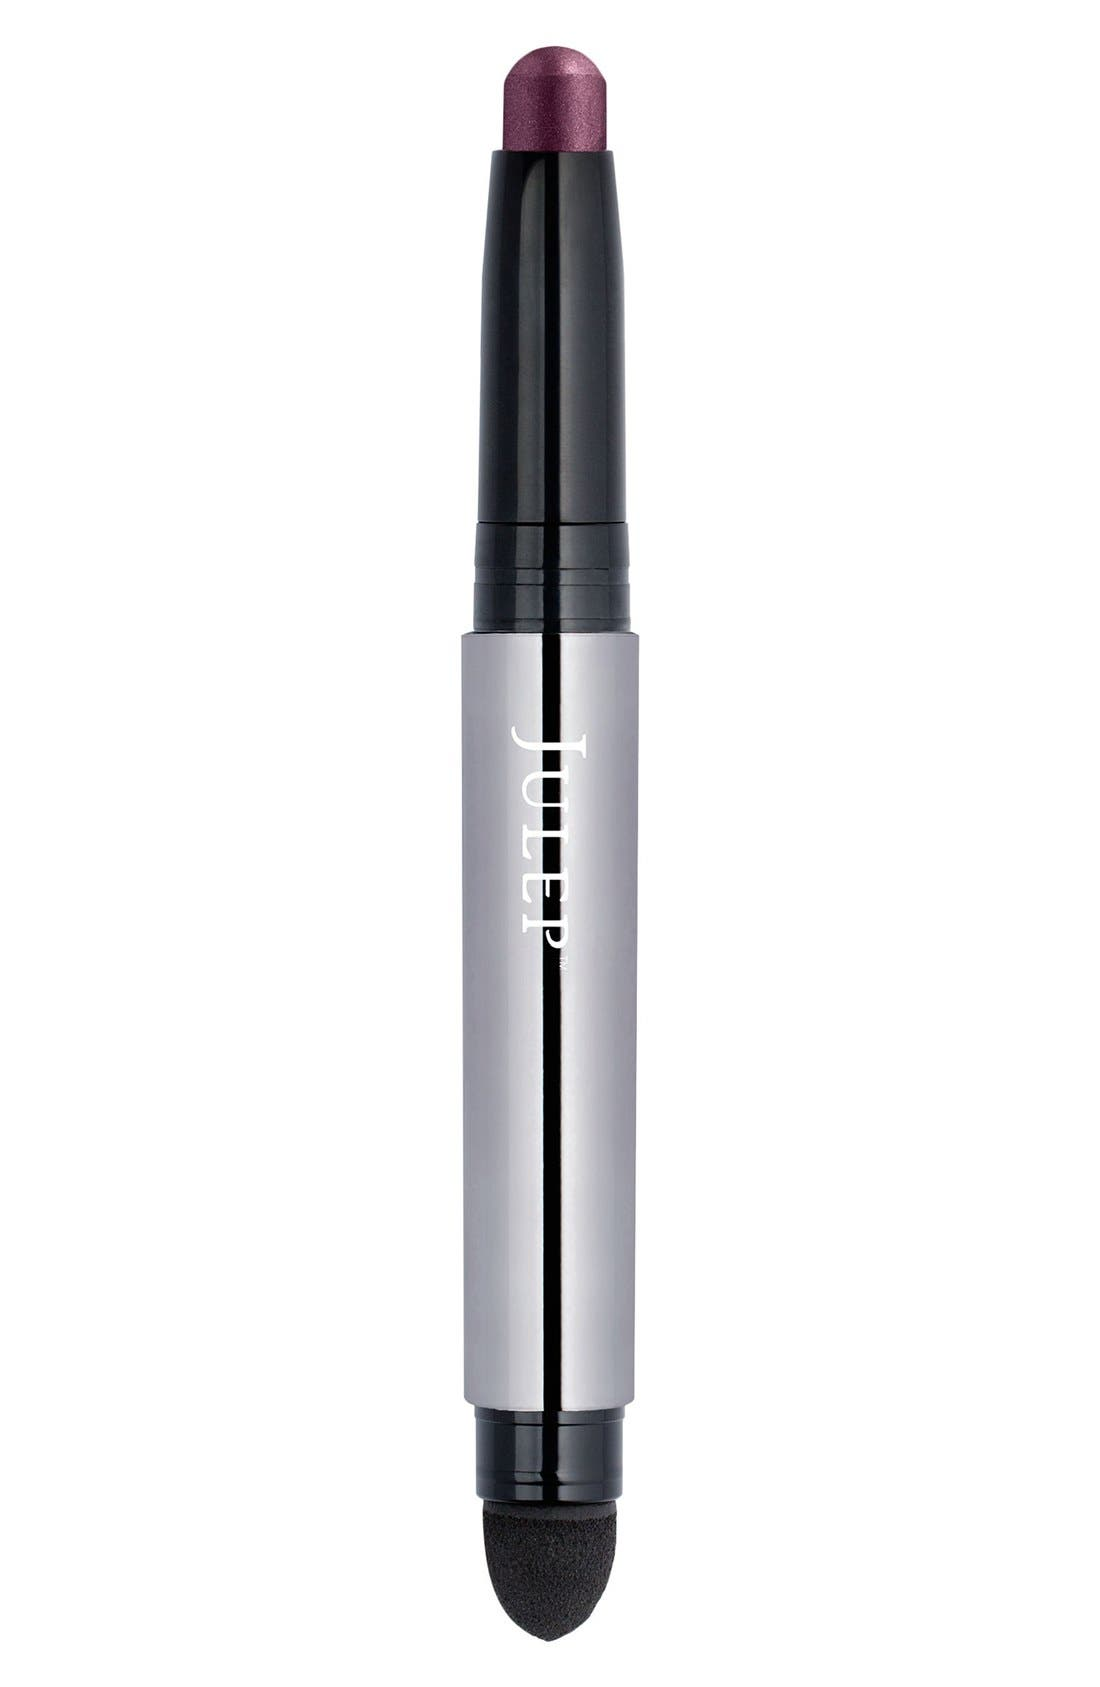 Julep™ Eyeshadow 101 Eyeshadow Stick